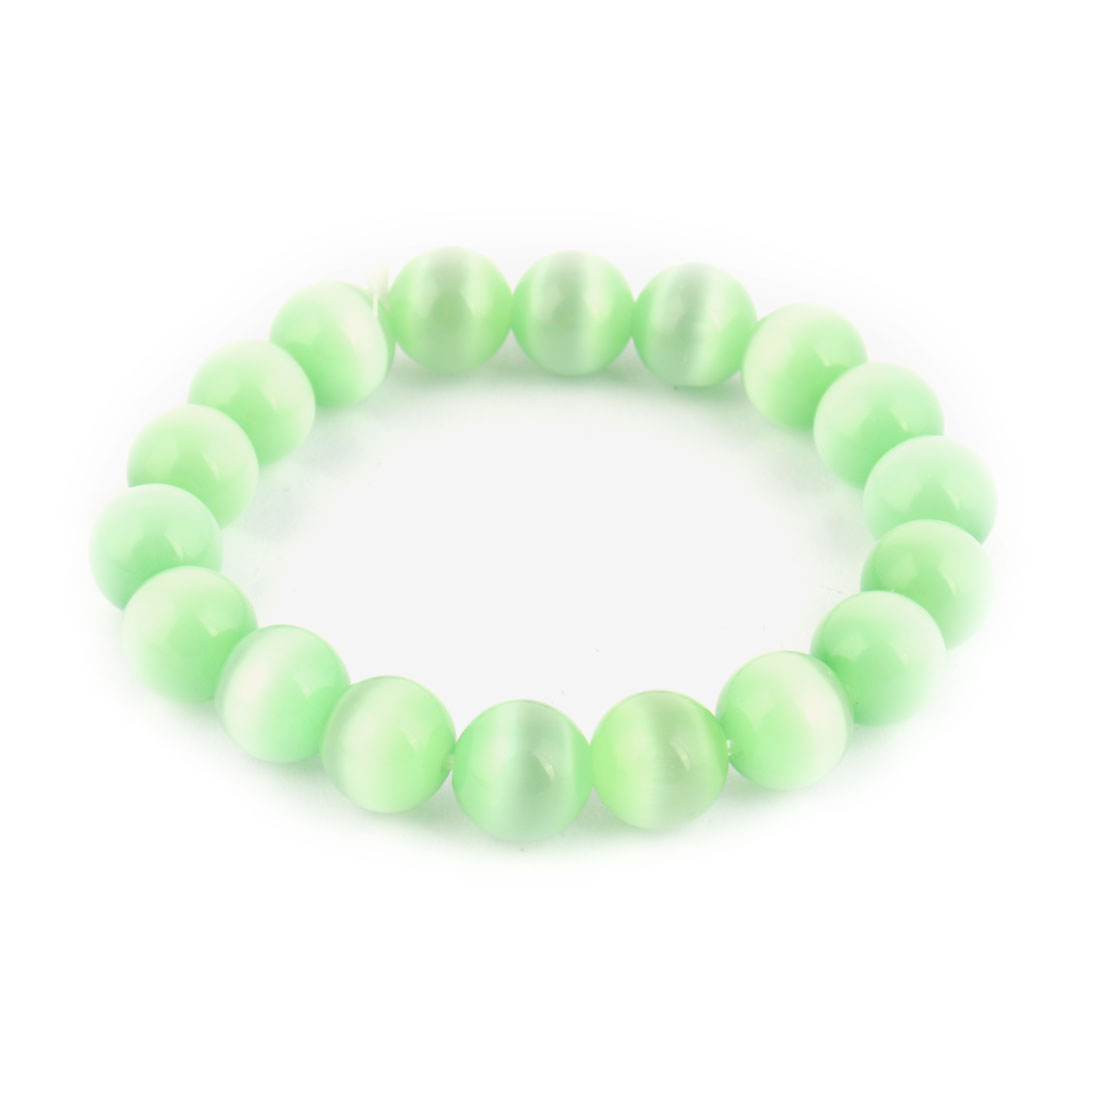 Lady Party Plastic Beads Faux Cat Eye Stone Bracelet Bangle Green 10mm Dia